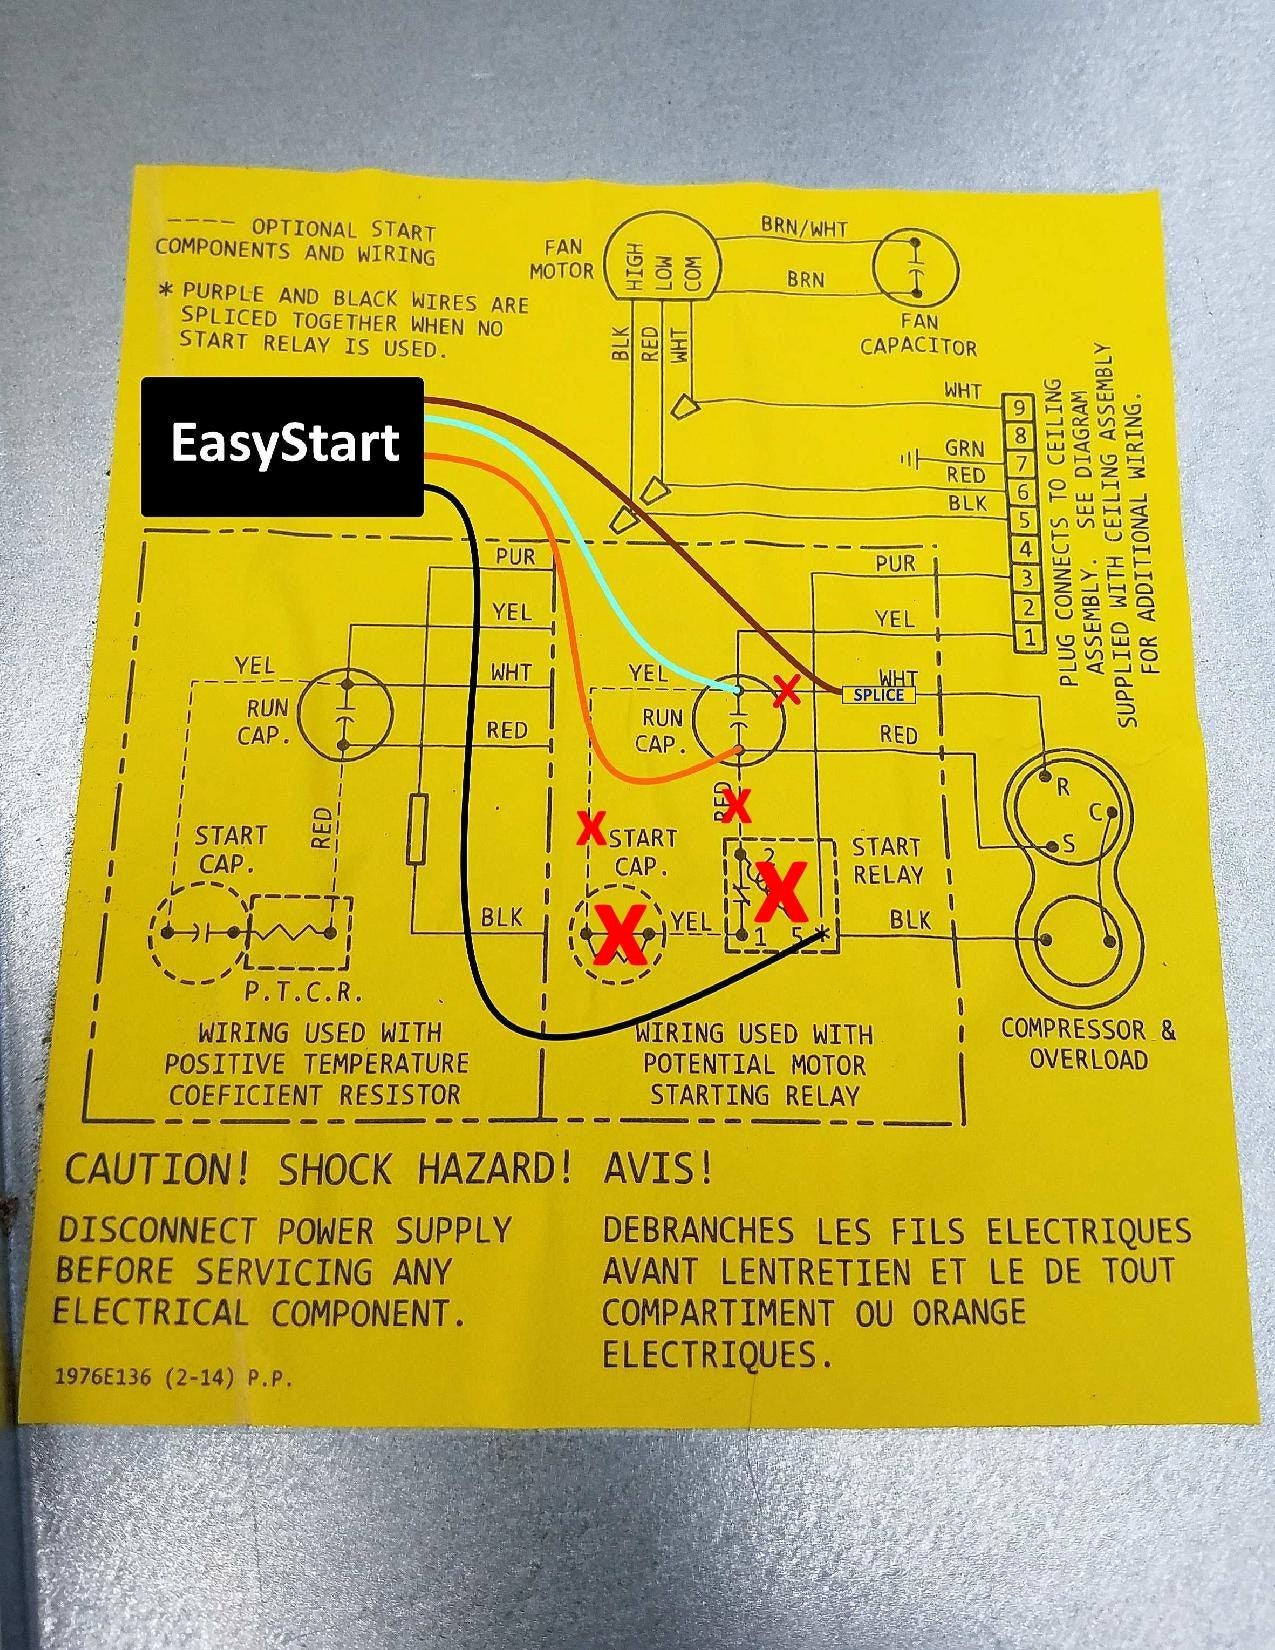 Rv easystart soft starter wiring diagrams resource page micro air coleman mach 1 easystart 364 wiring diagram asfbconference2016 Images